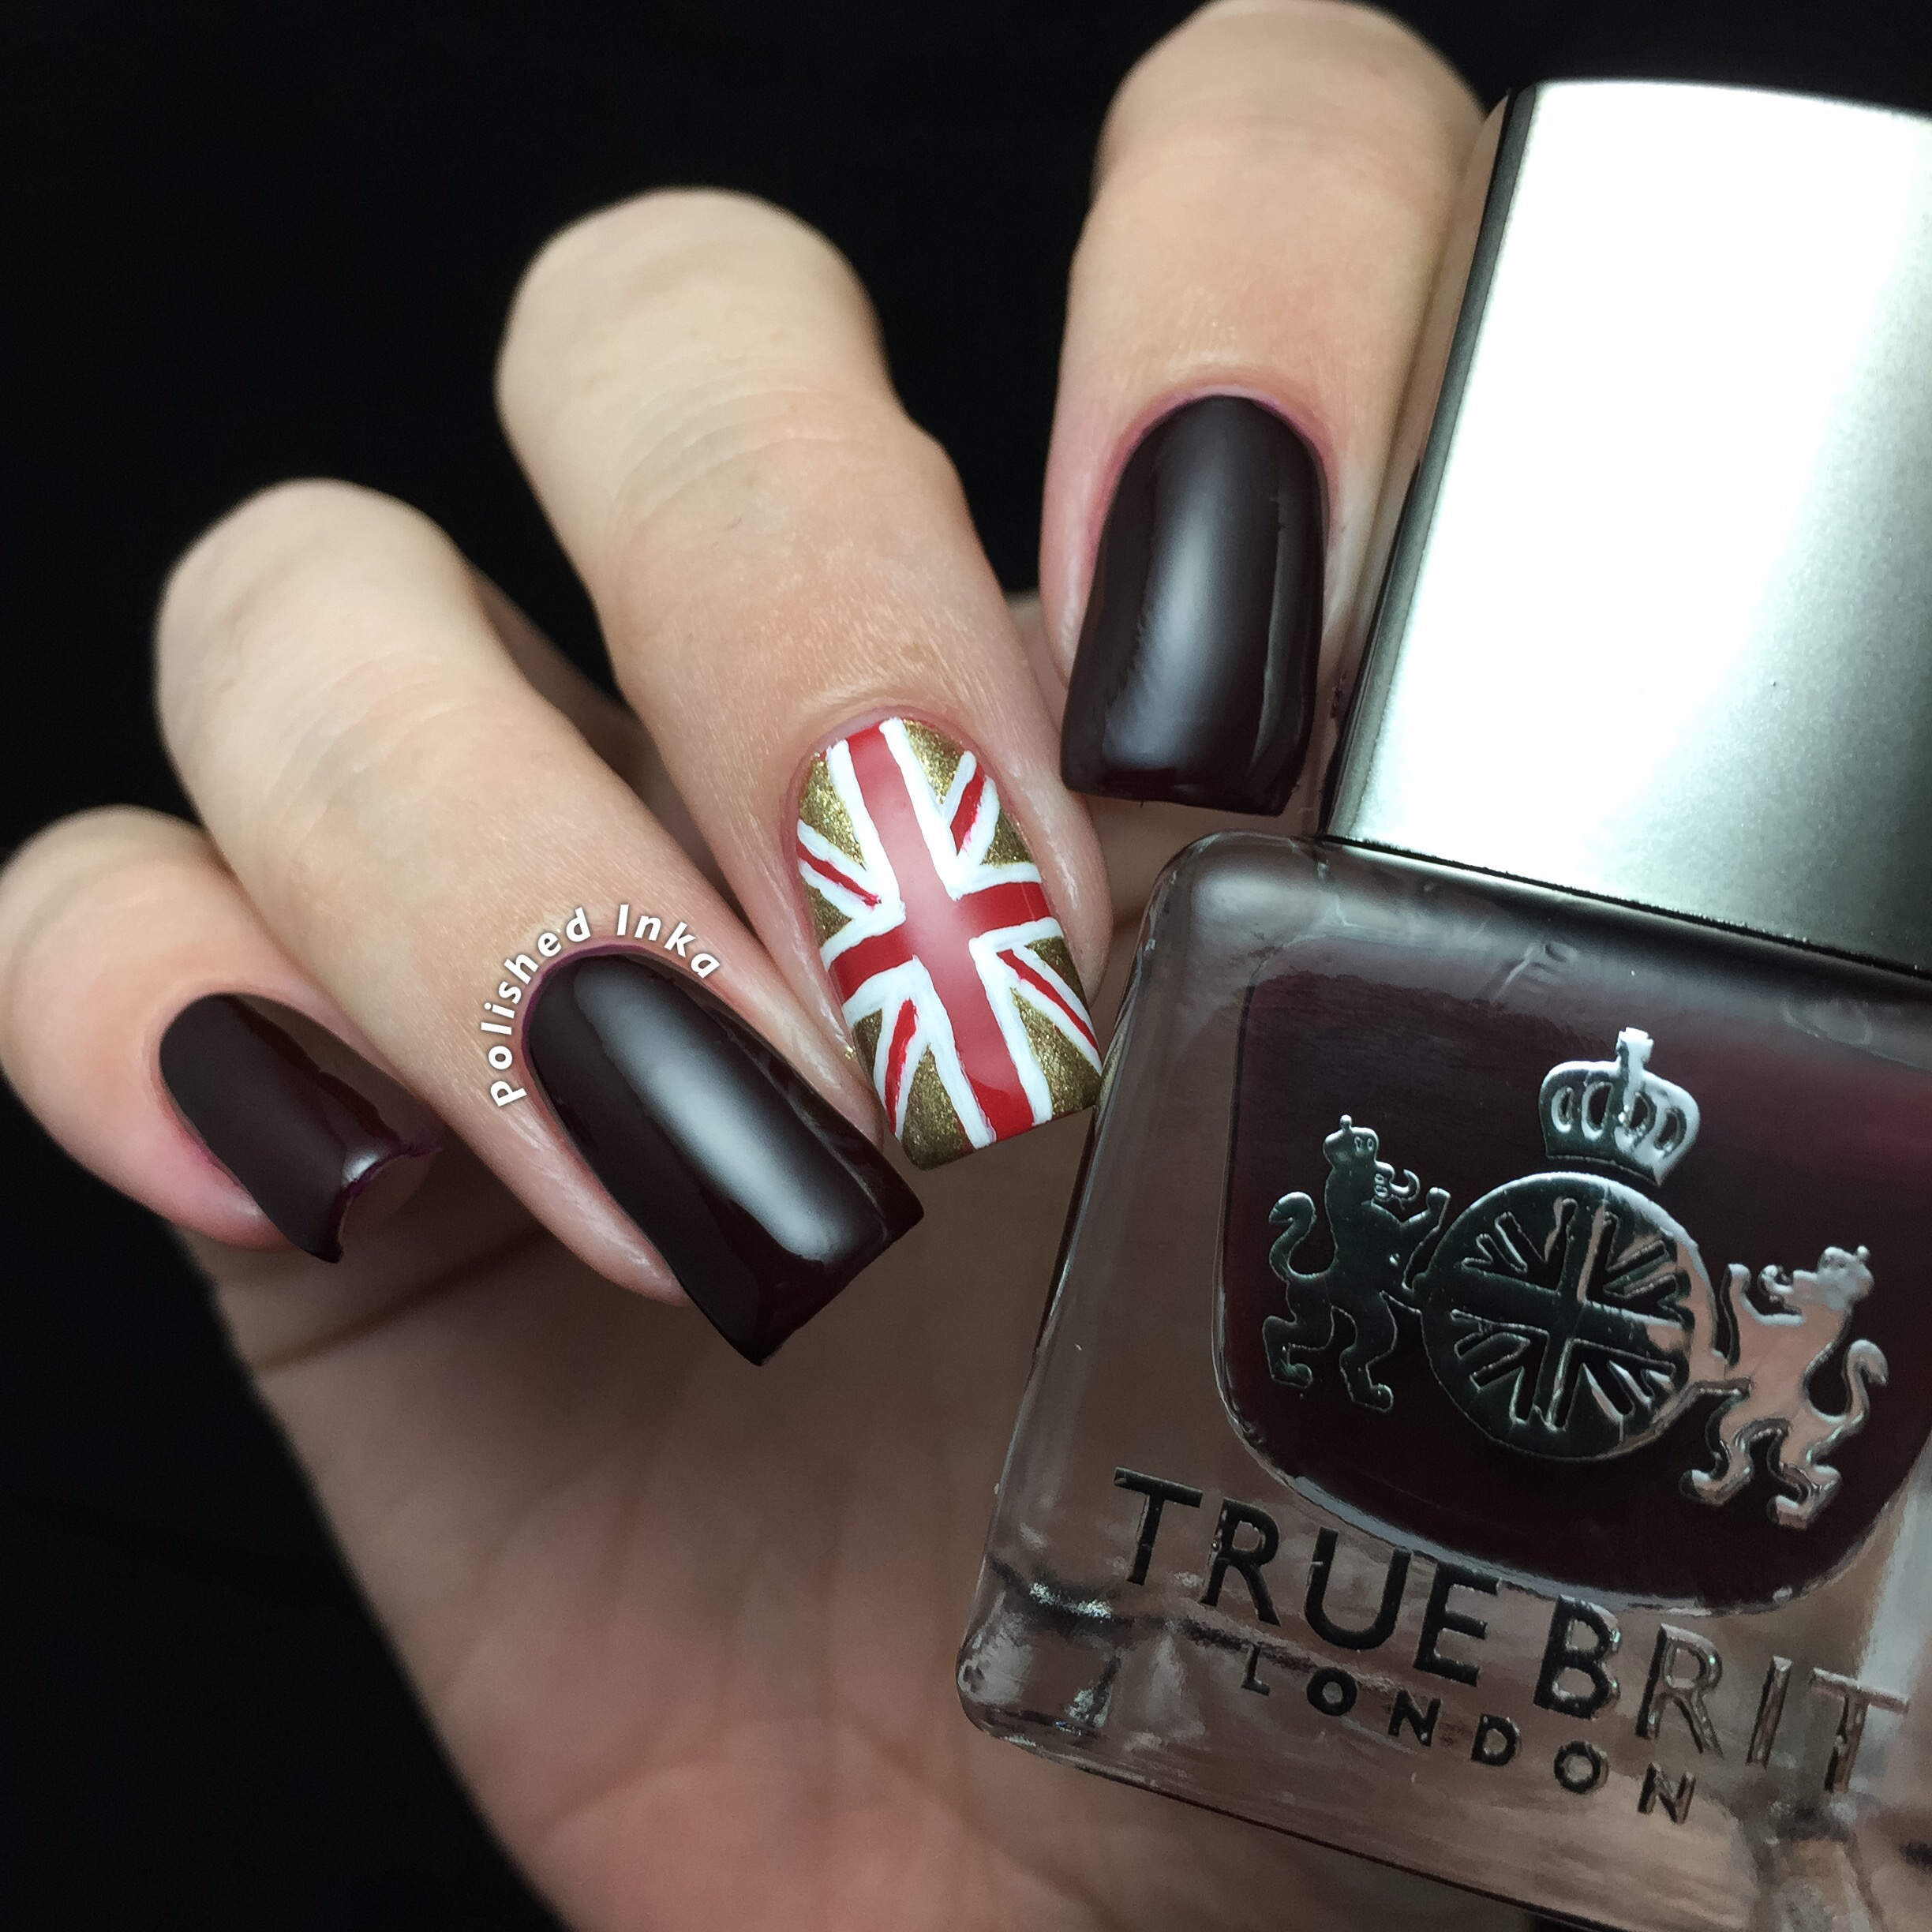 true brit london autumn/ winter 2015 swatches pall mall swatch